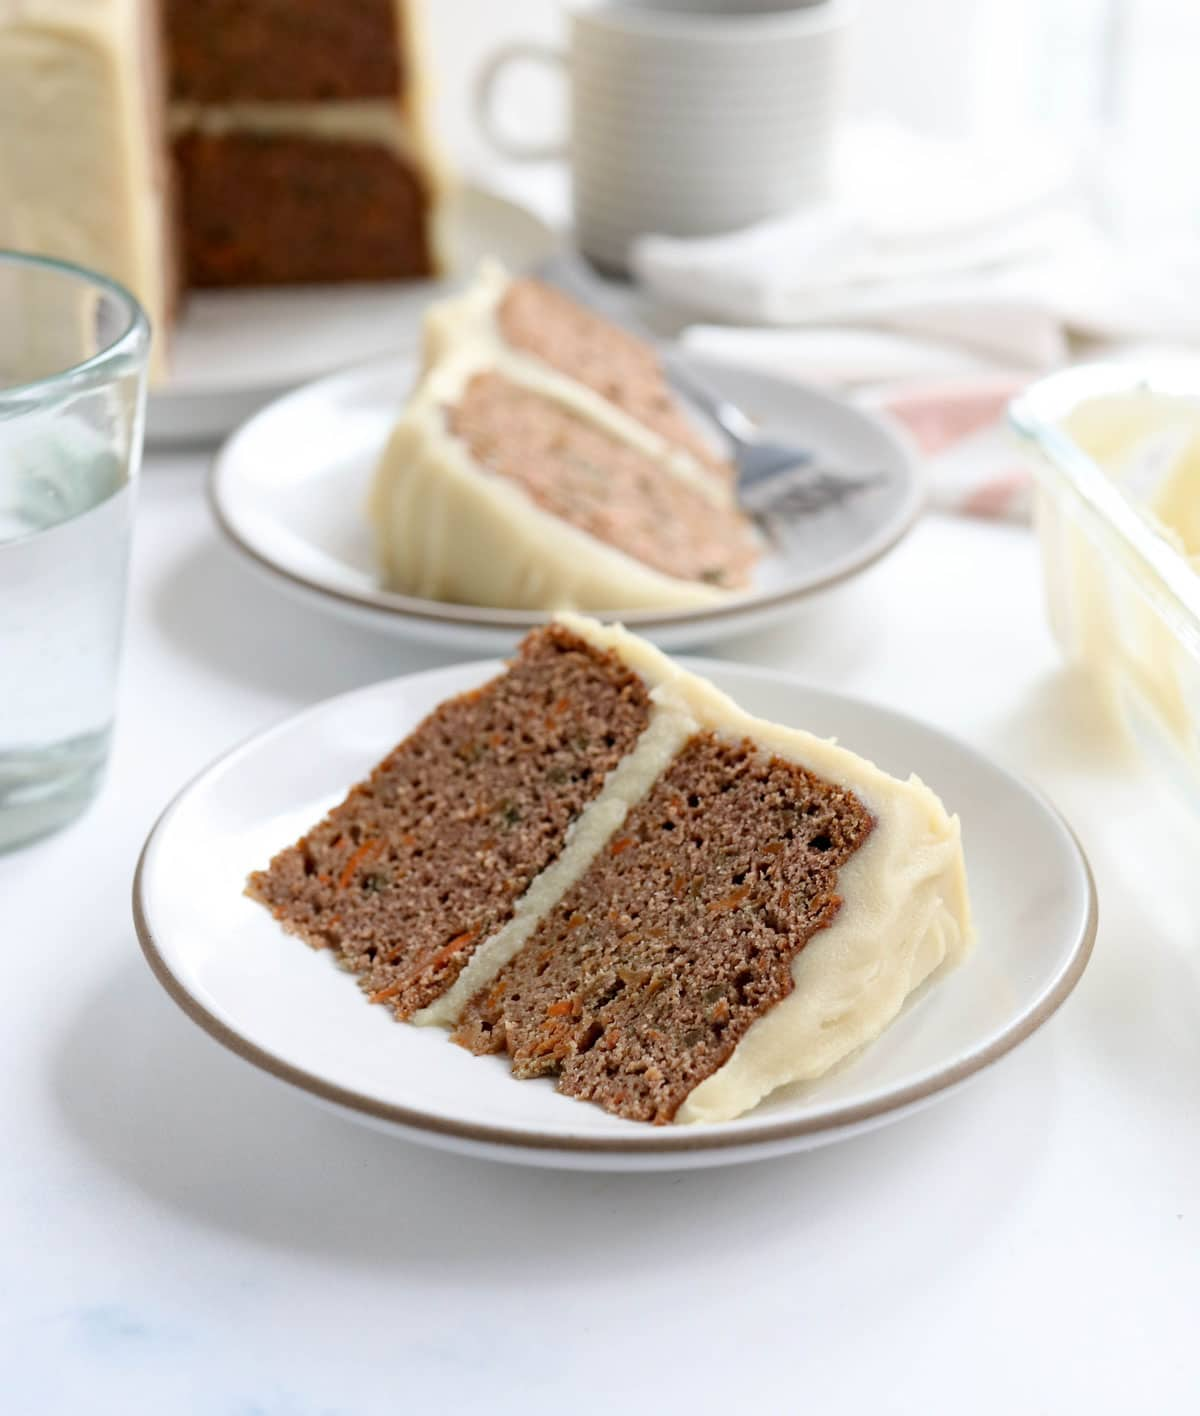 carrot cake slice on a plate with frosting